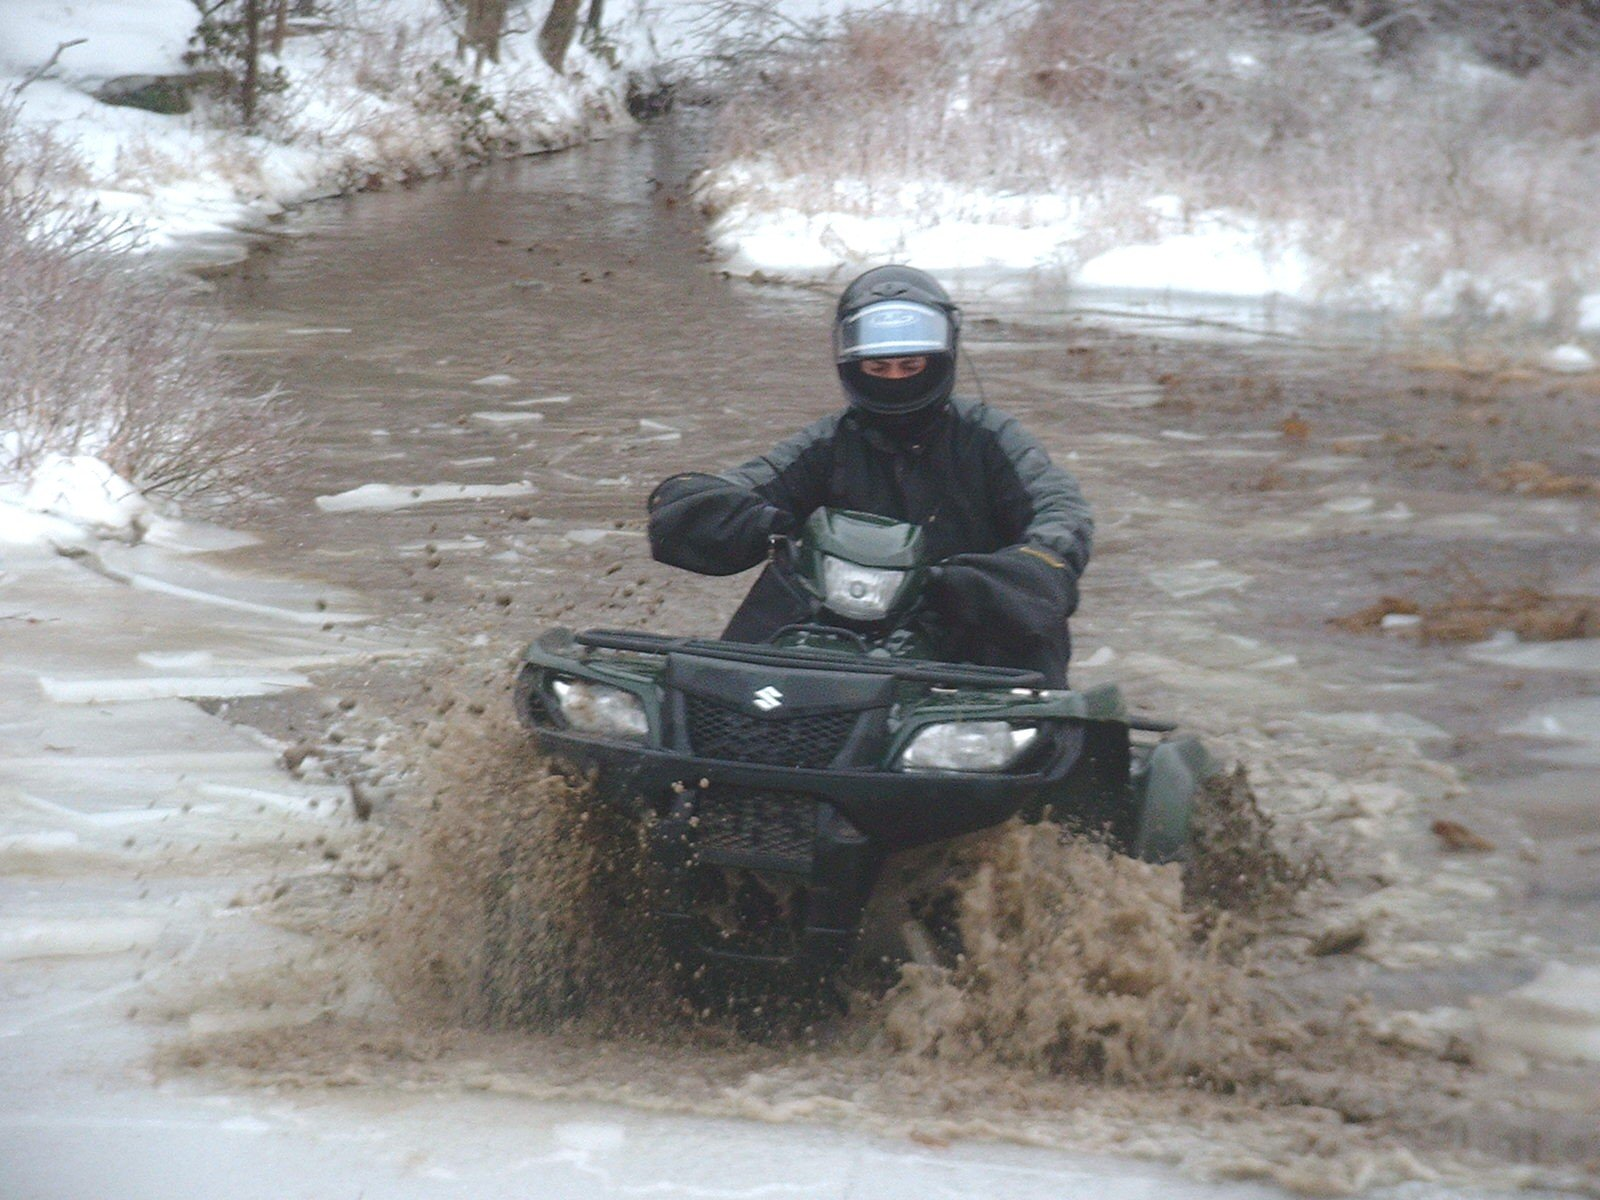 Suzuki King Quad Through Ice